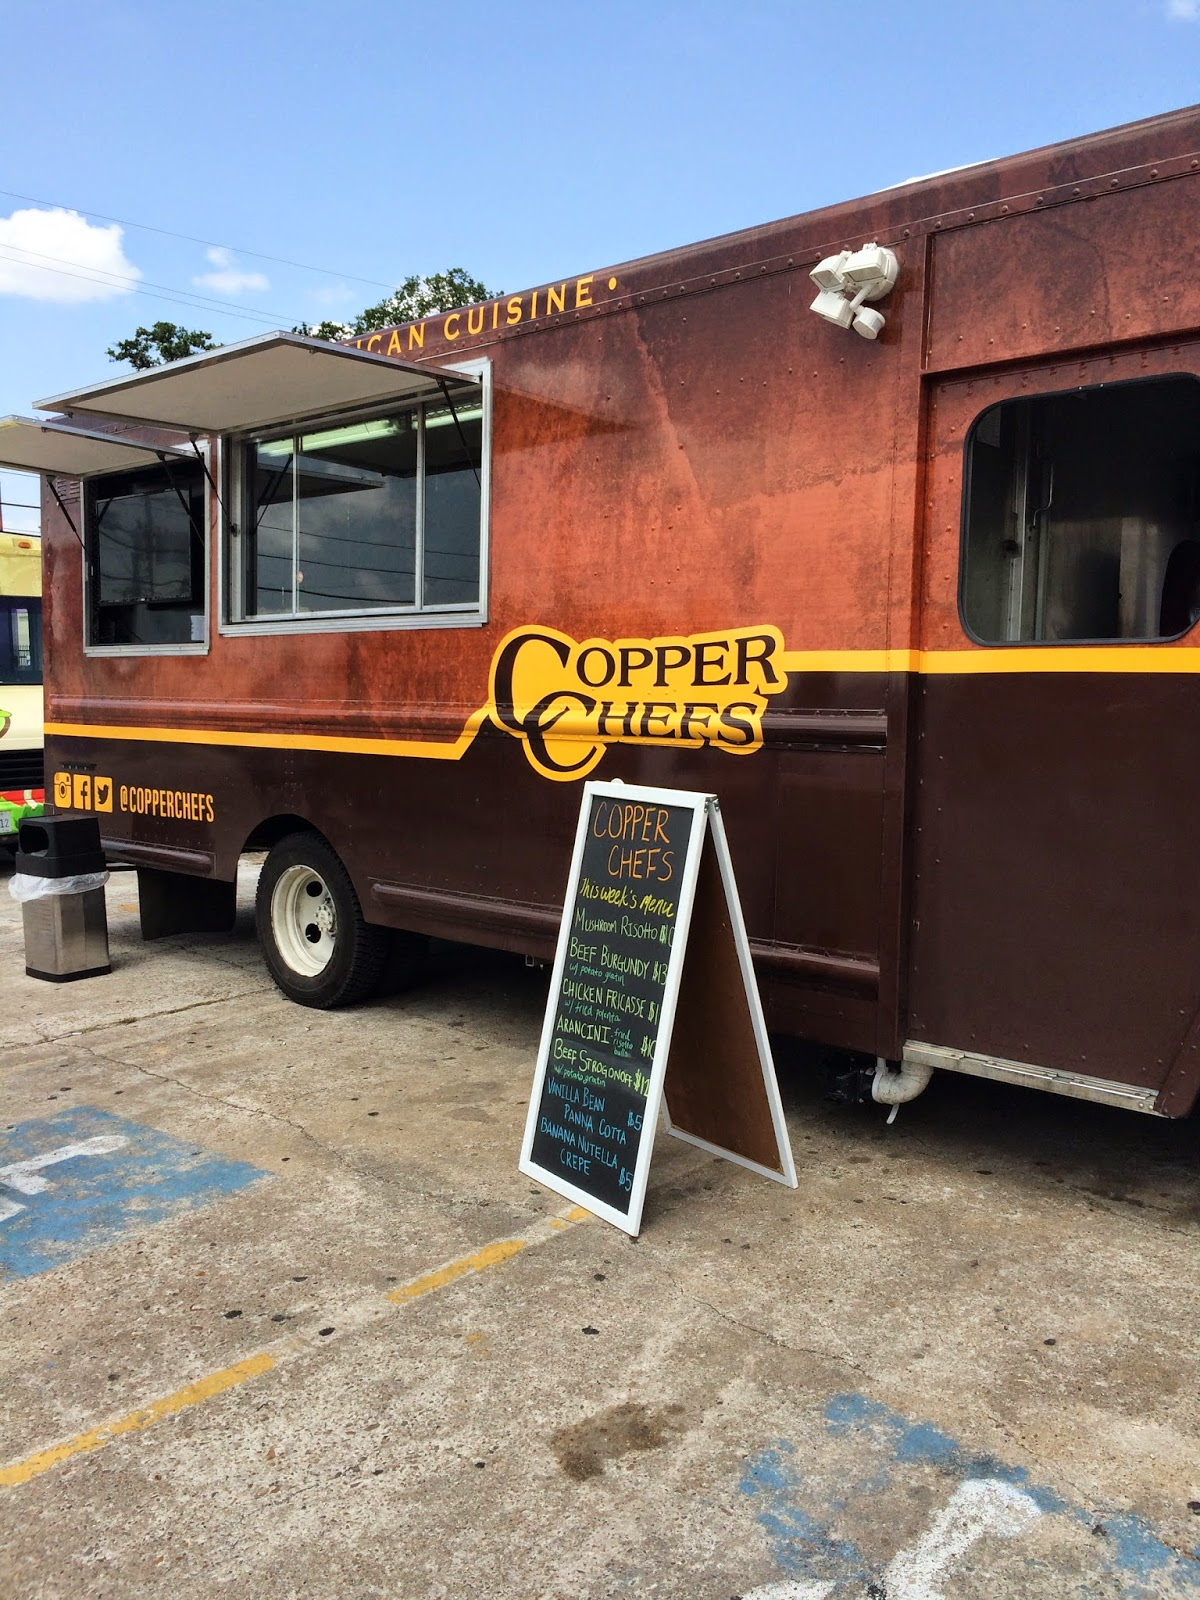 Copper Chefs Food Truck, Houston, TX - photo by Lemon Jello